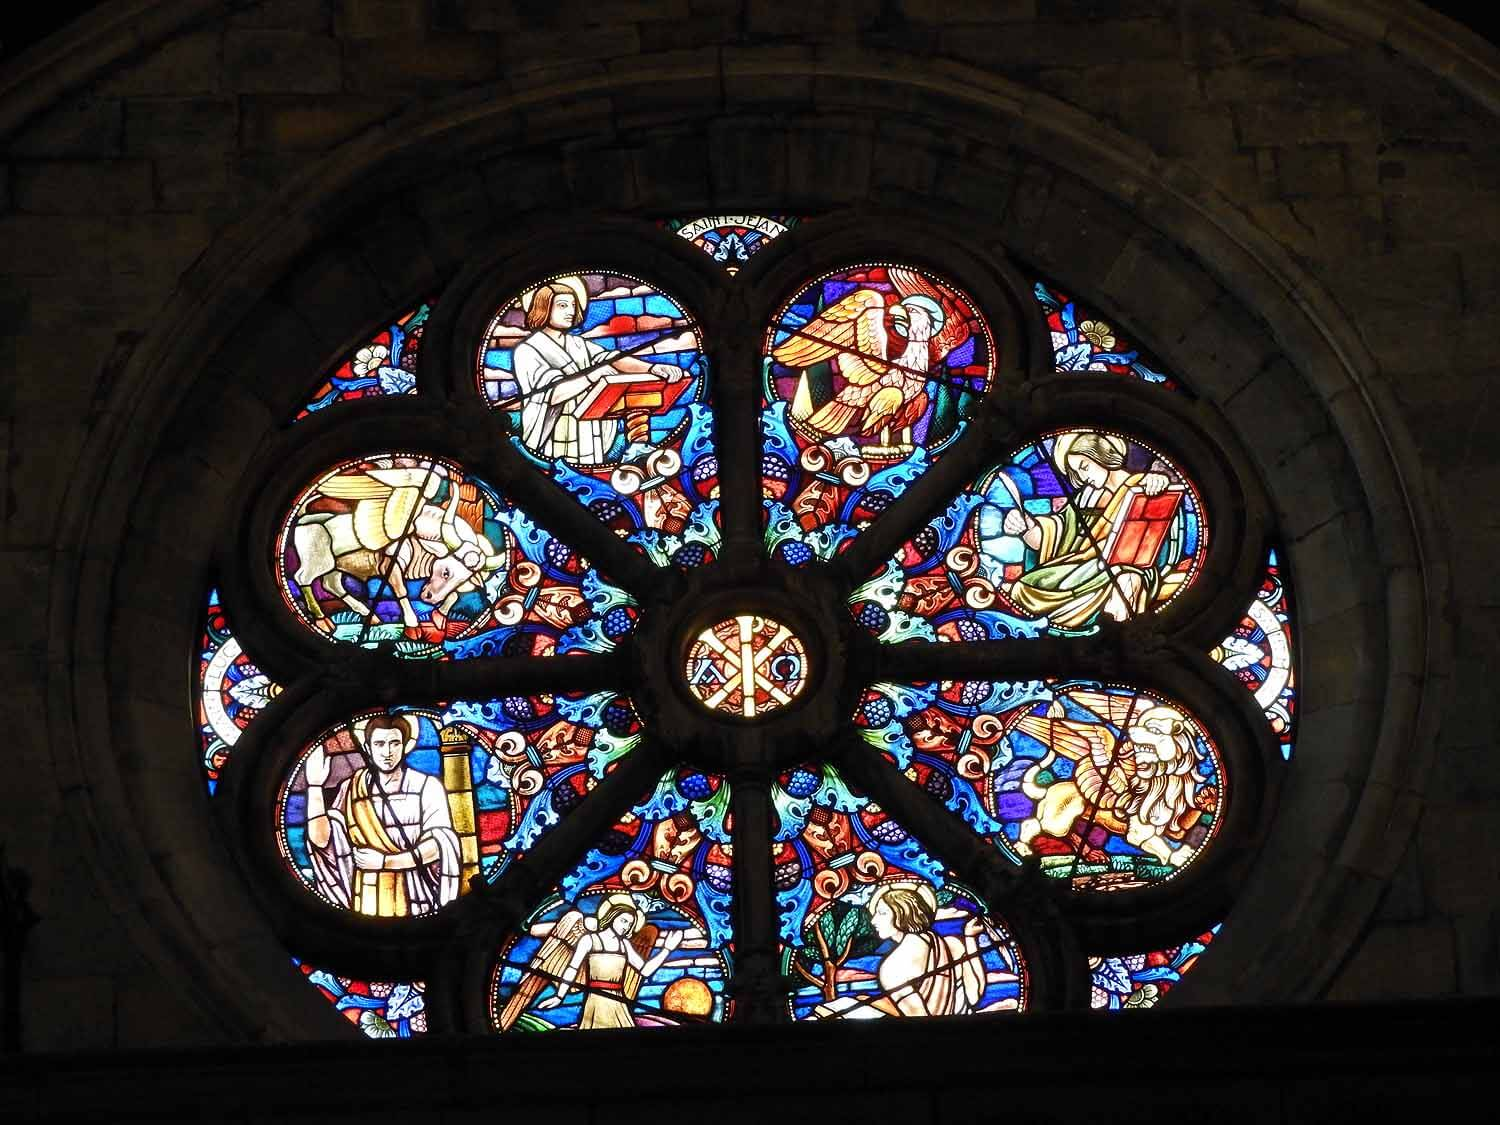 switzerland-neuchatel-collégiale-reformed-church-stained-glass-rosette.JPG